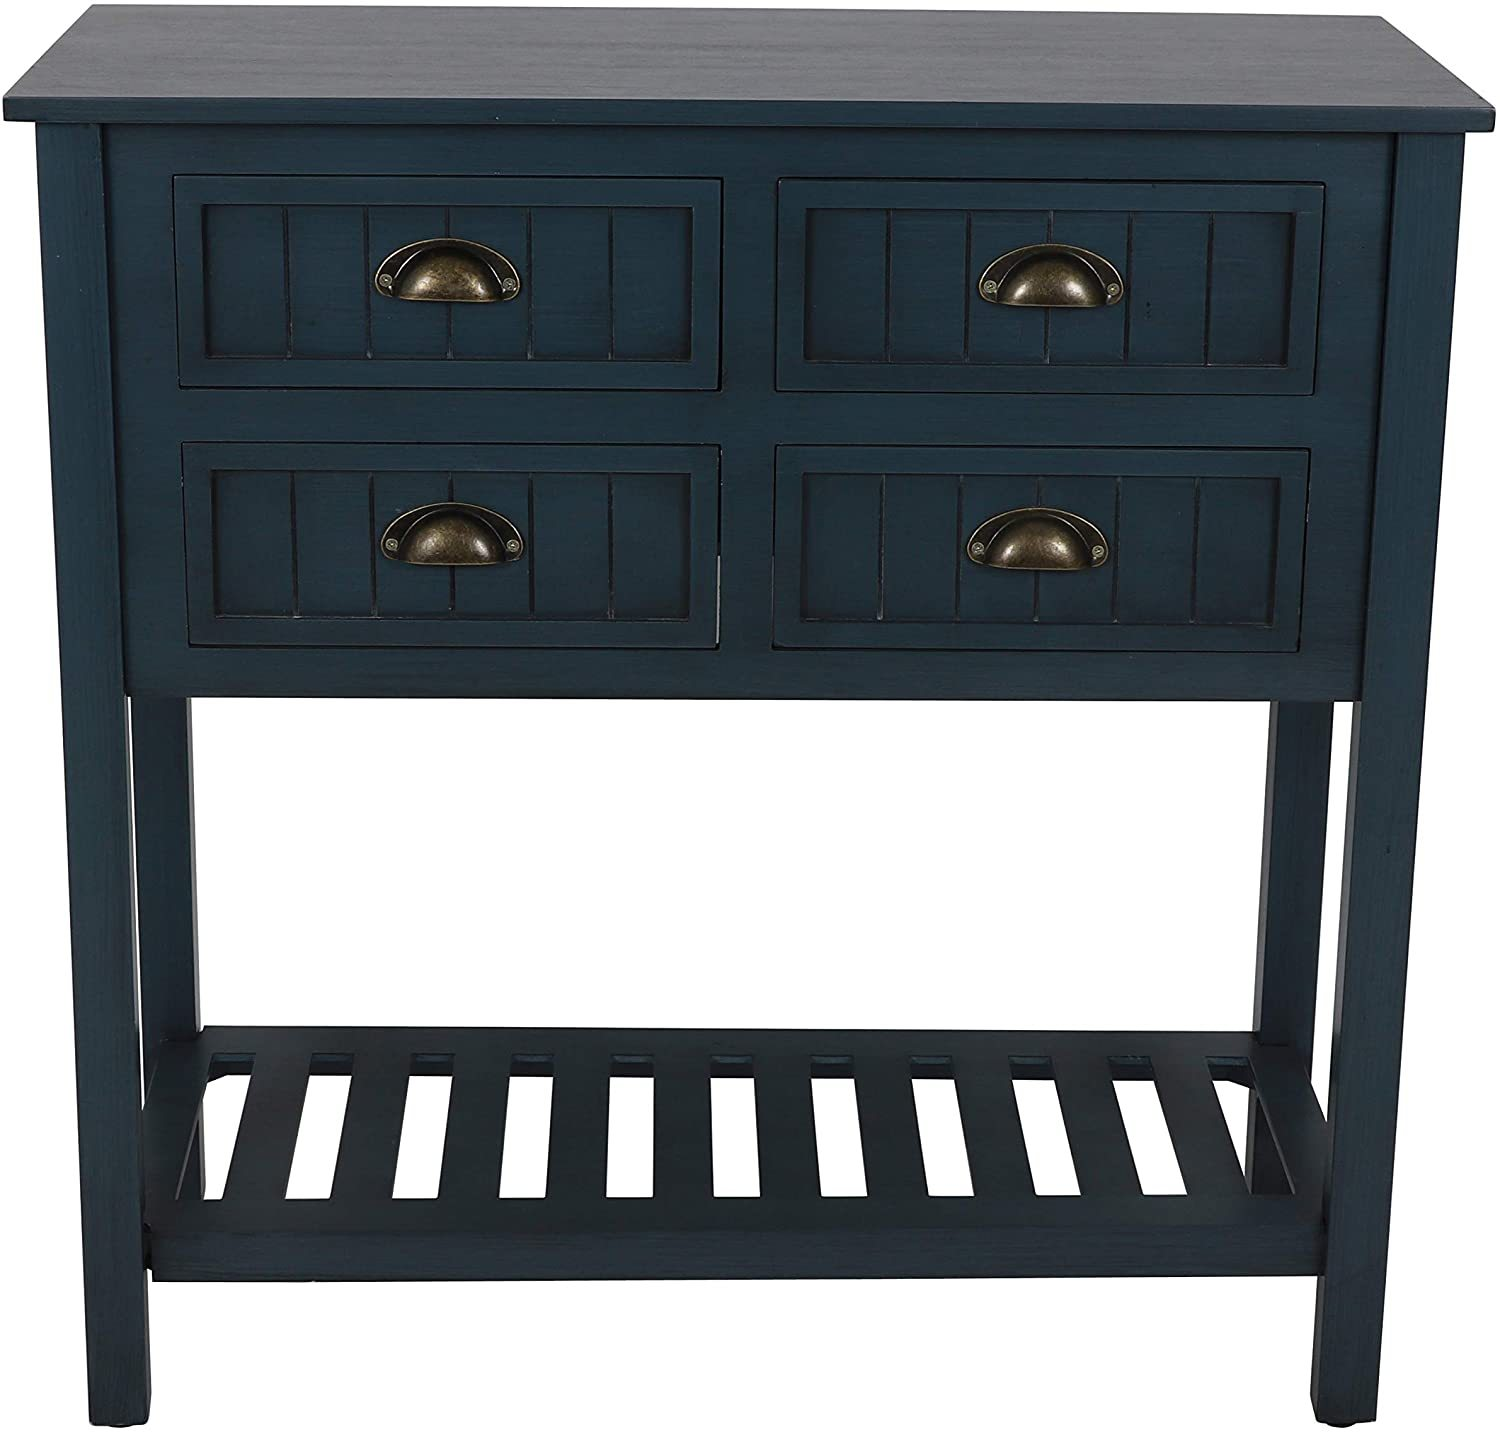 Bailey Bead board 4-Drawer Console Table, 14x32x32, Antique Navy